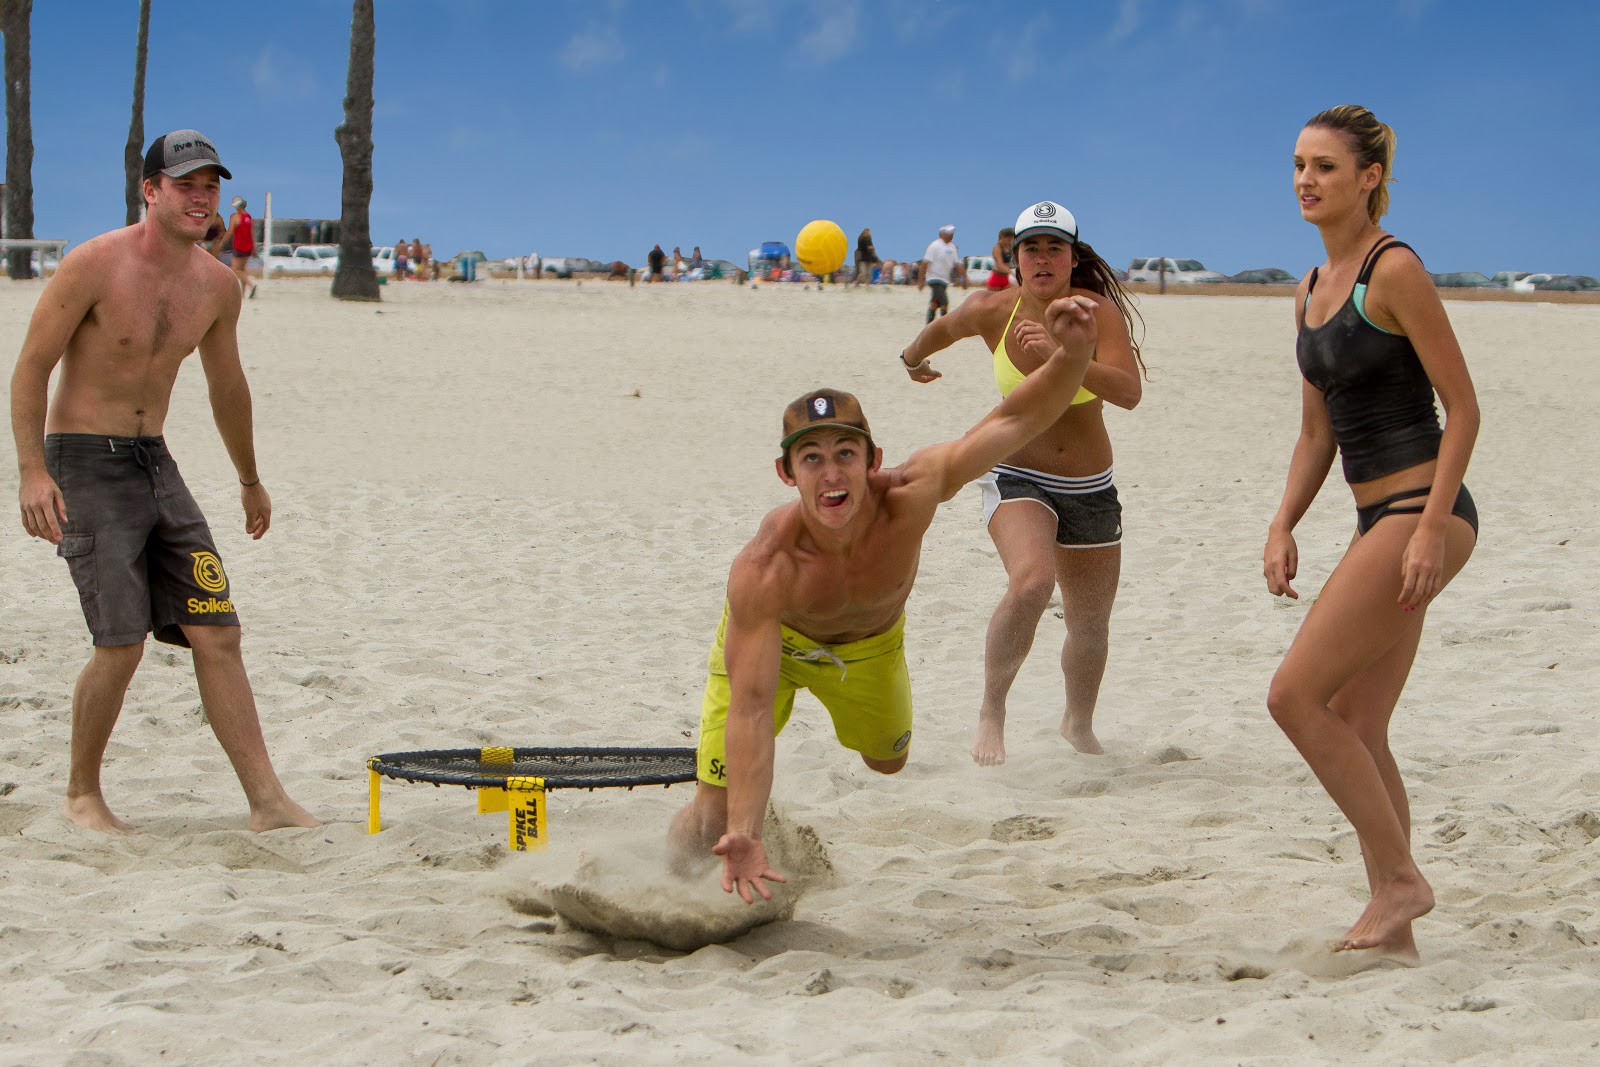 Beach Spikeball